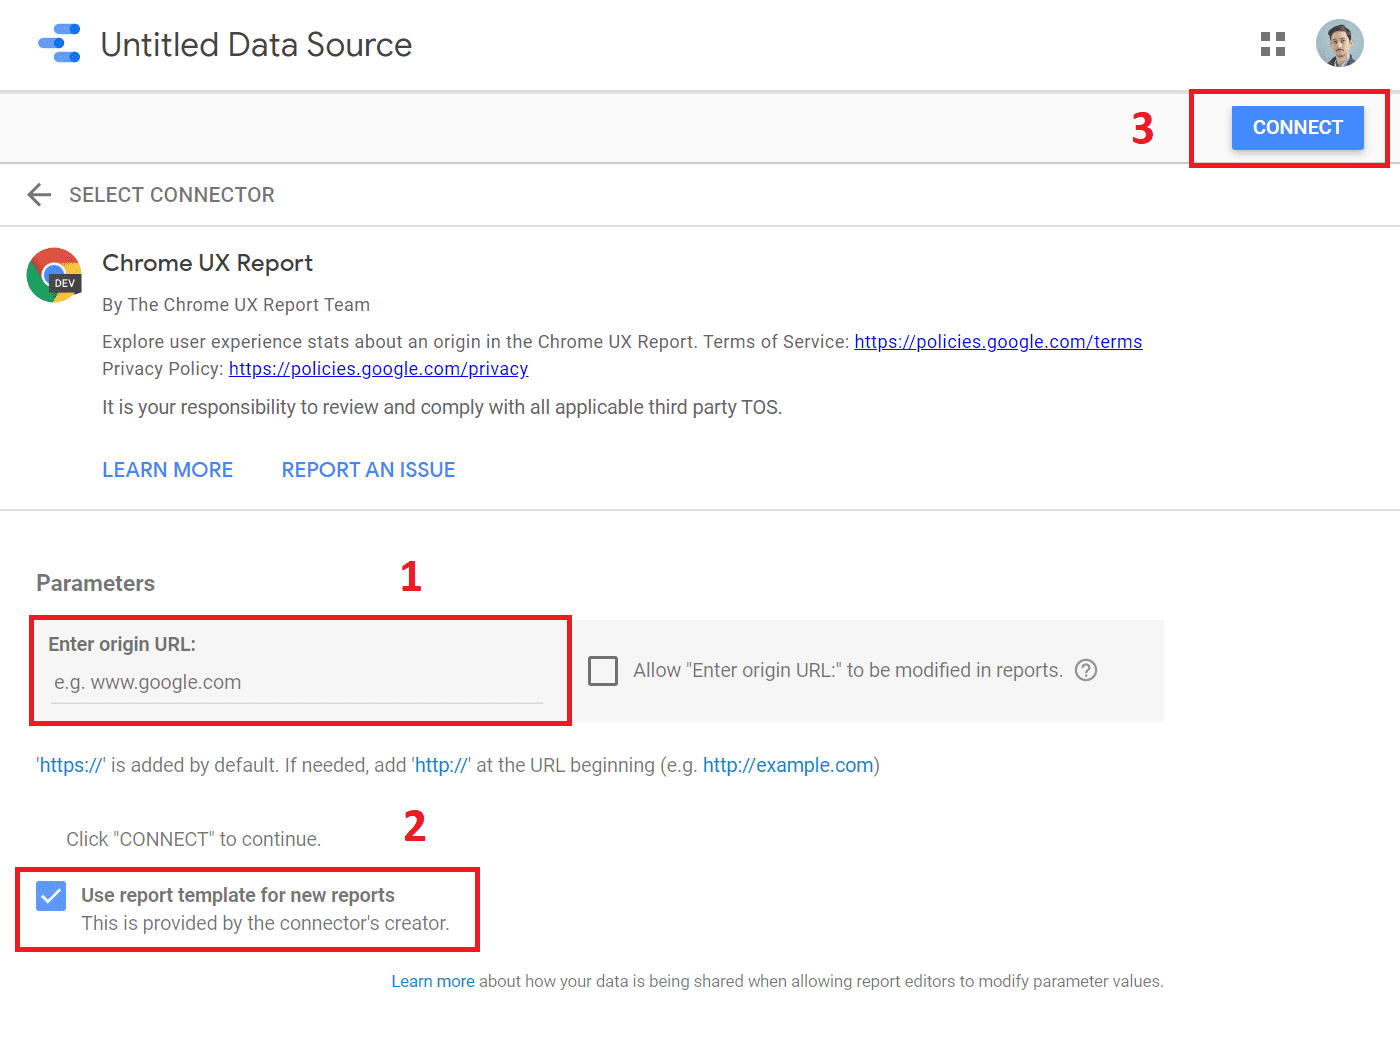 chrome ux report connector